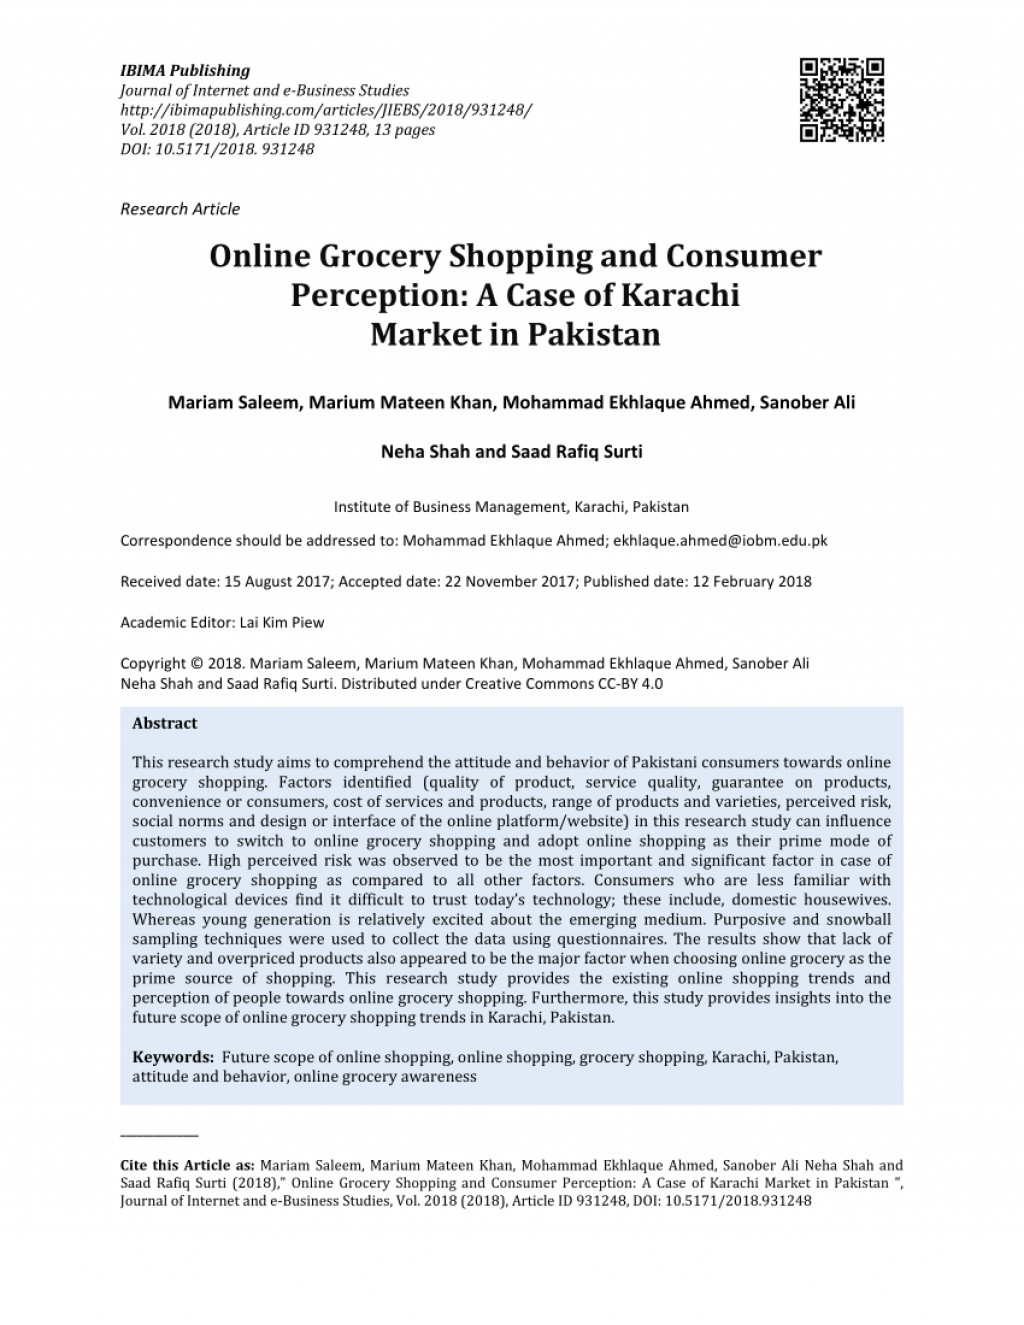 008 Research Paper Largepreview Online Shopping In Pakistan Unforgettable Papers Large